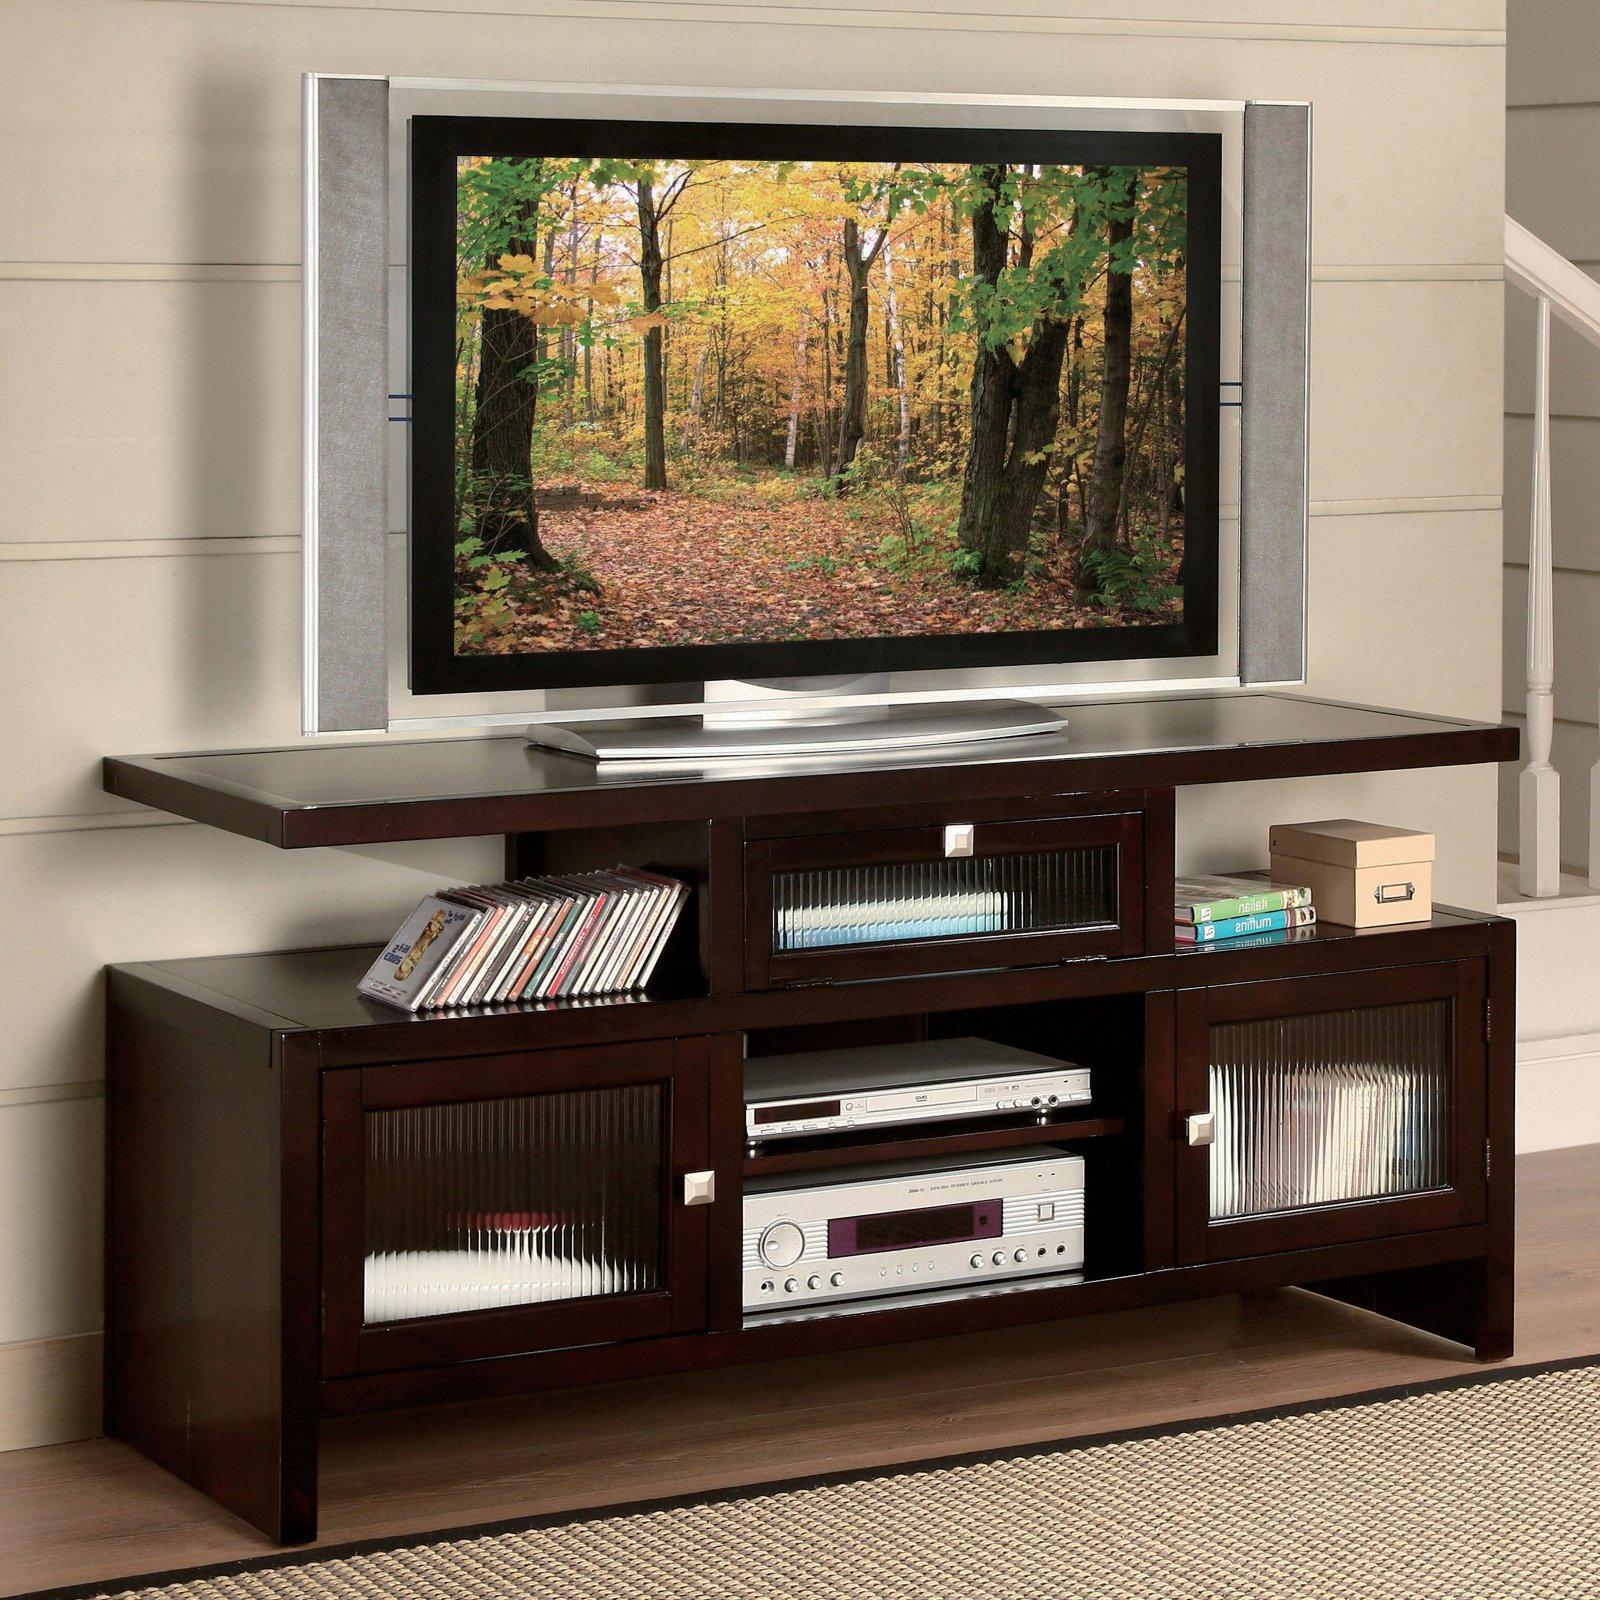 """Acme Jupiter Foldable Tv Stand For Tvs Up To 70"""", Espresso Intended For Most Popular Kinsella Tv Stands For Tvs Up To 70"""" (View 4 of 25)"""